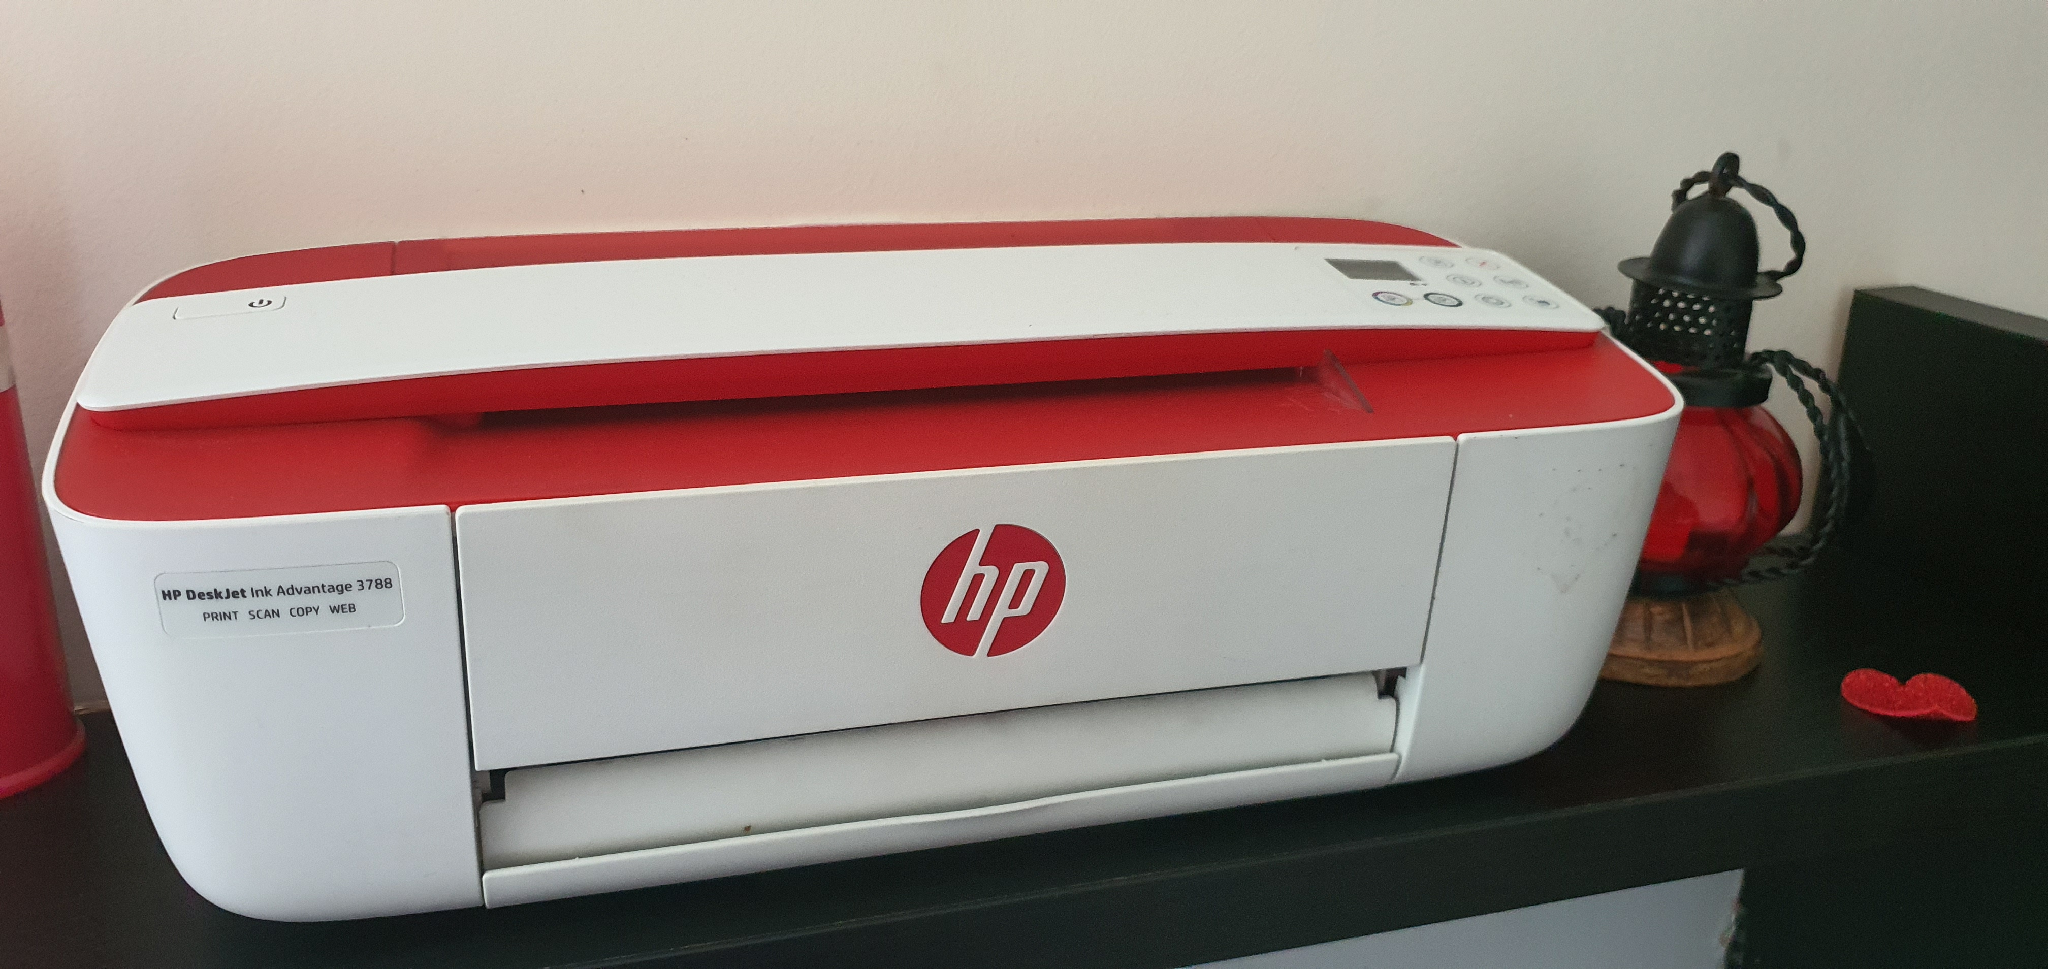 Most Compact hp printer 3788